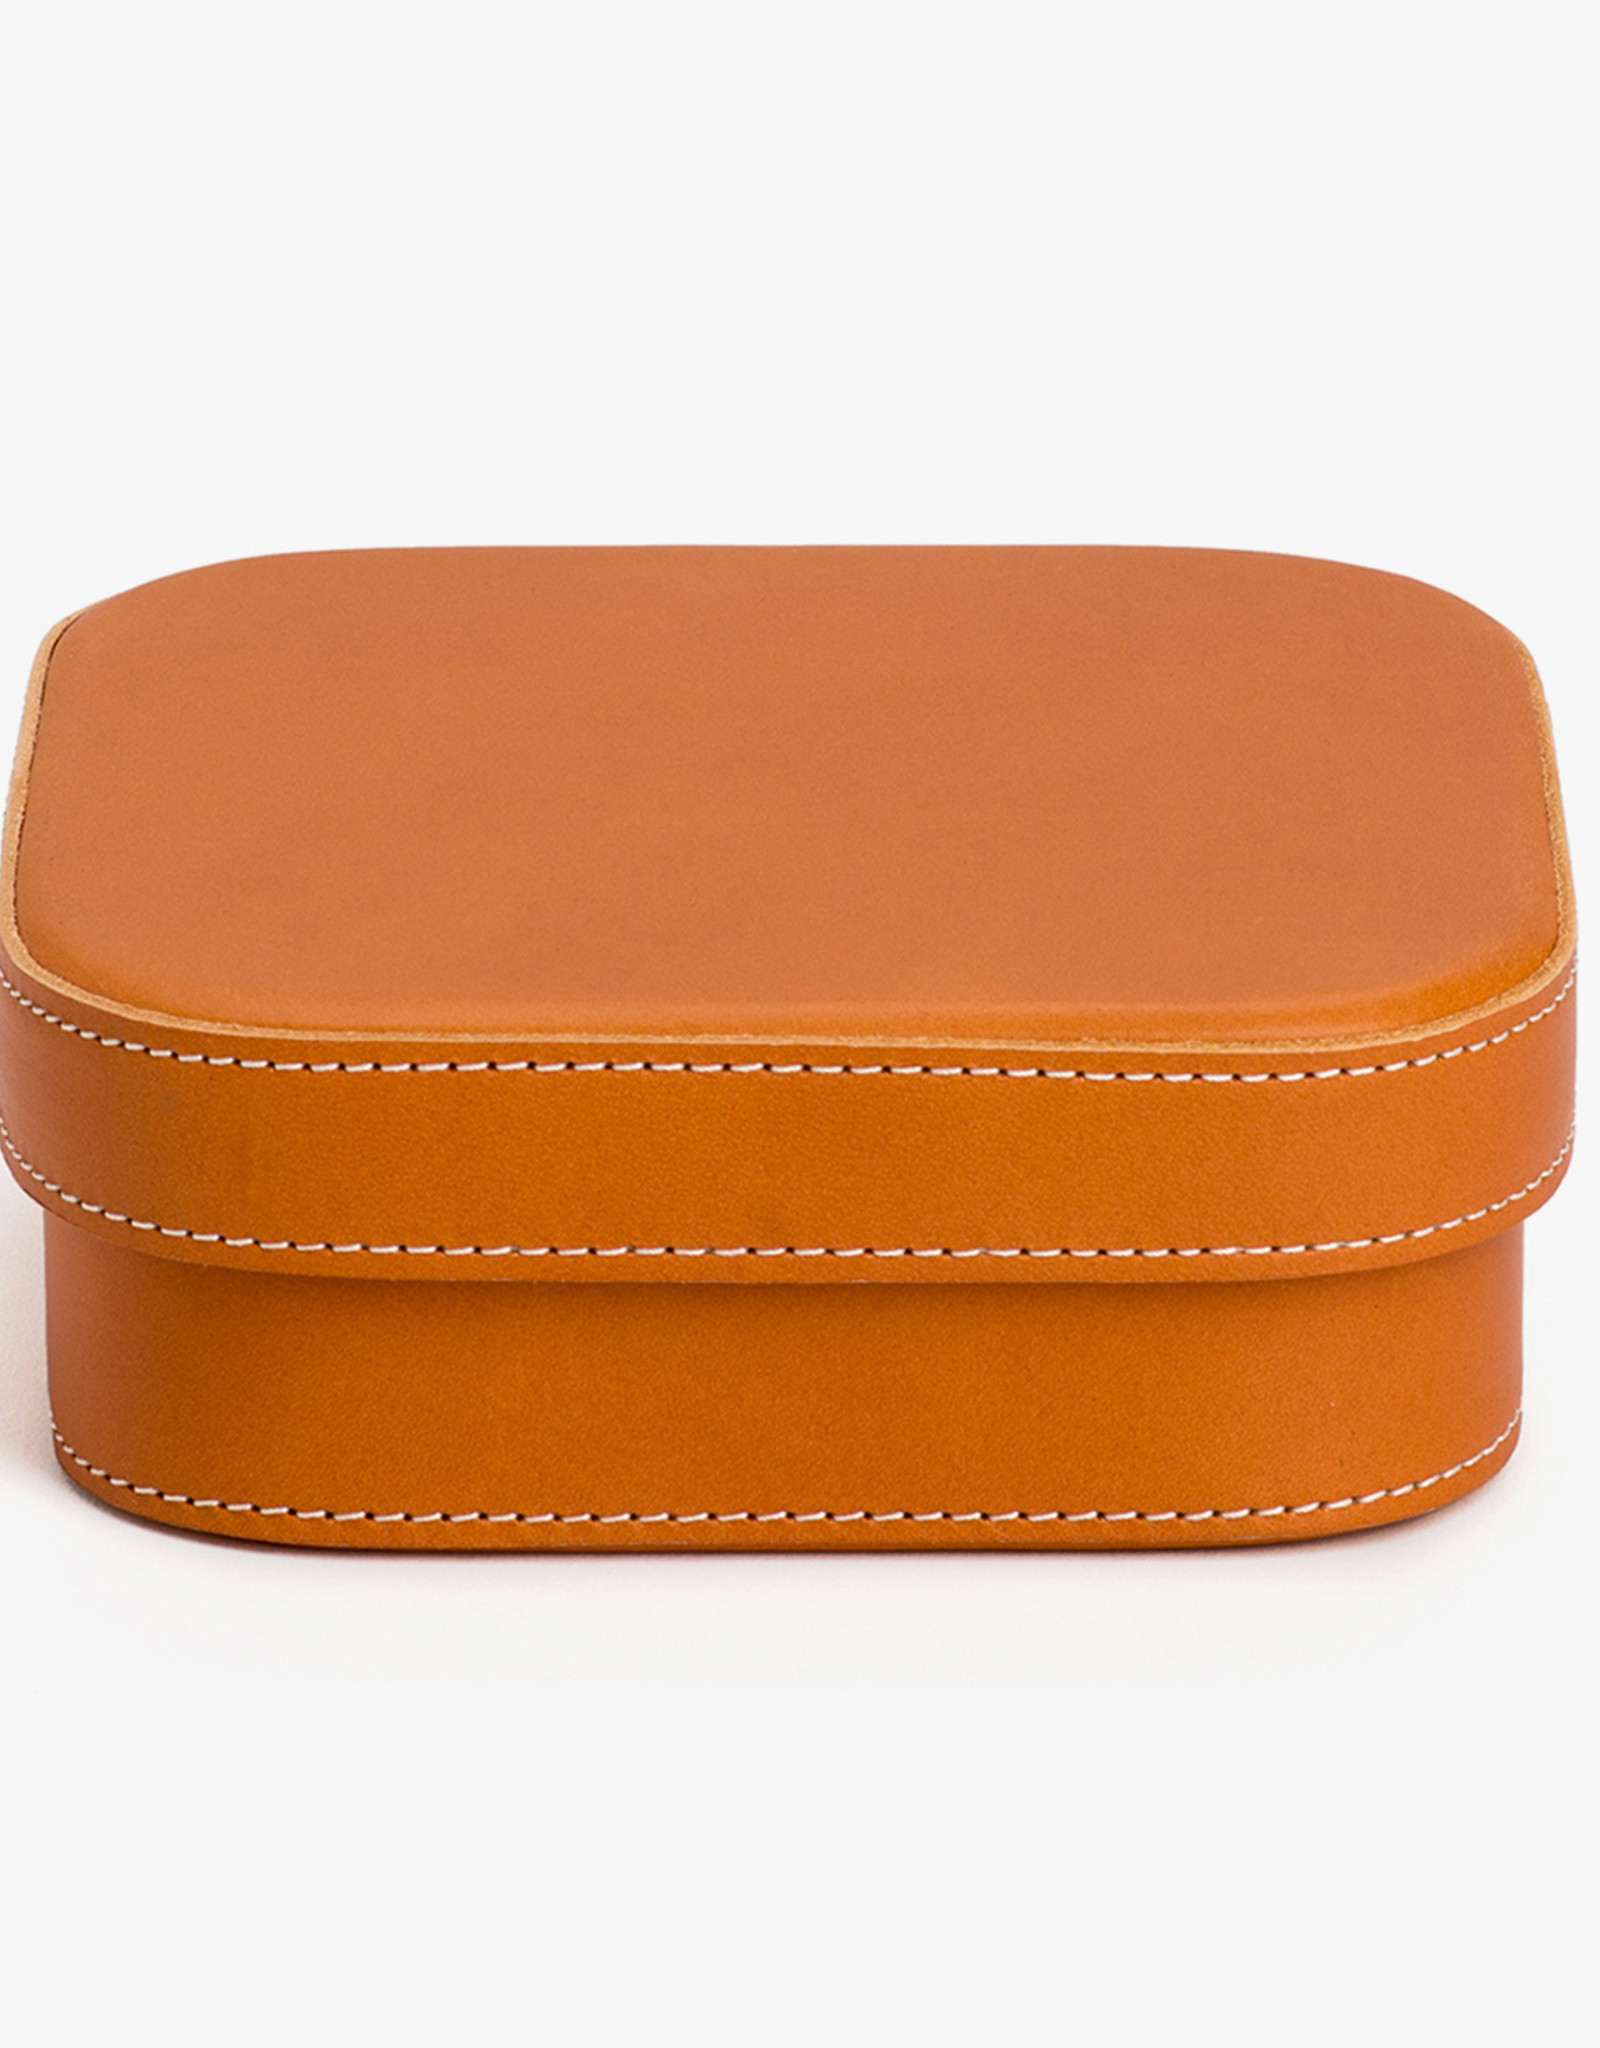 Large Leather Box by Palmgrens | Tan leather